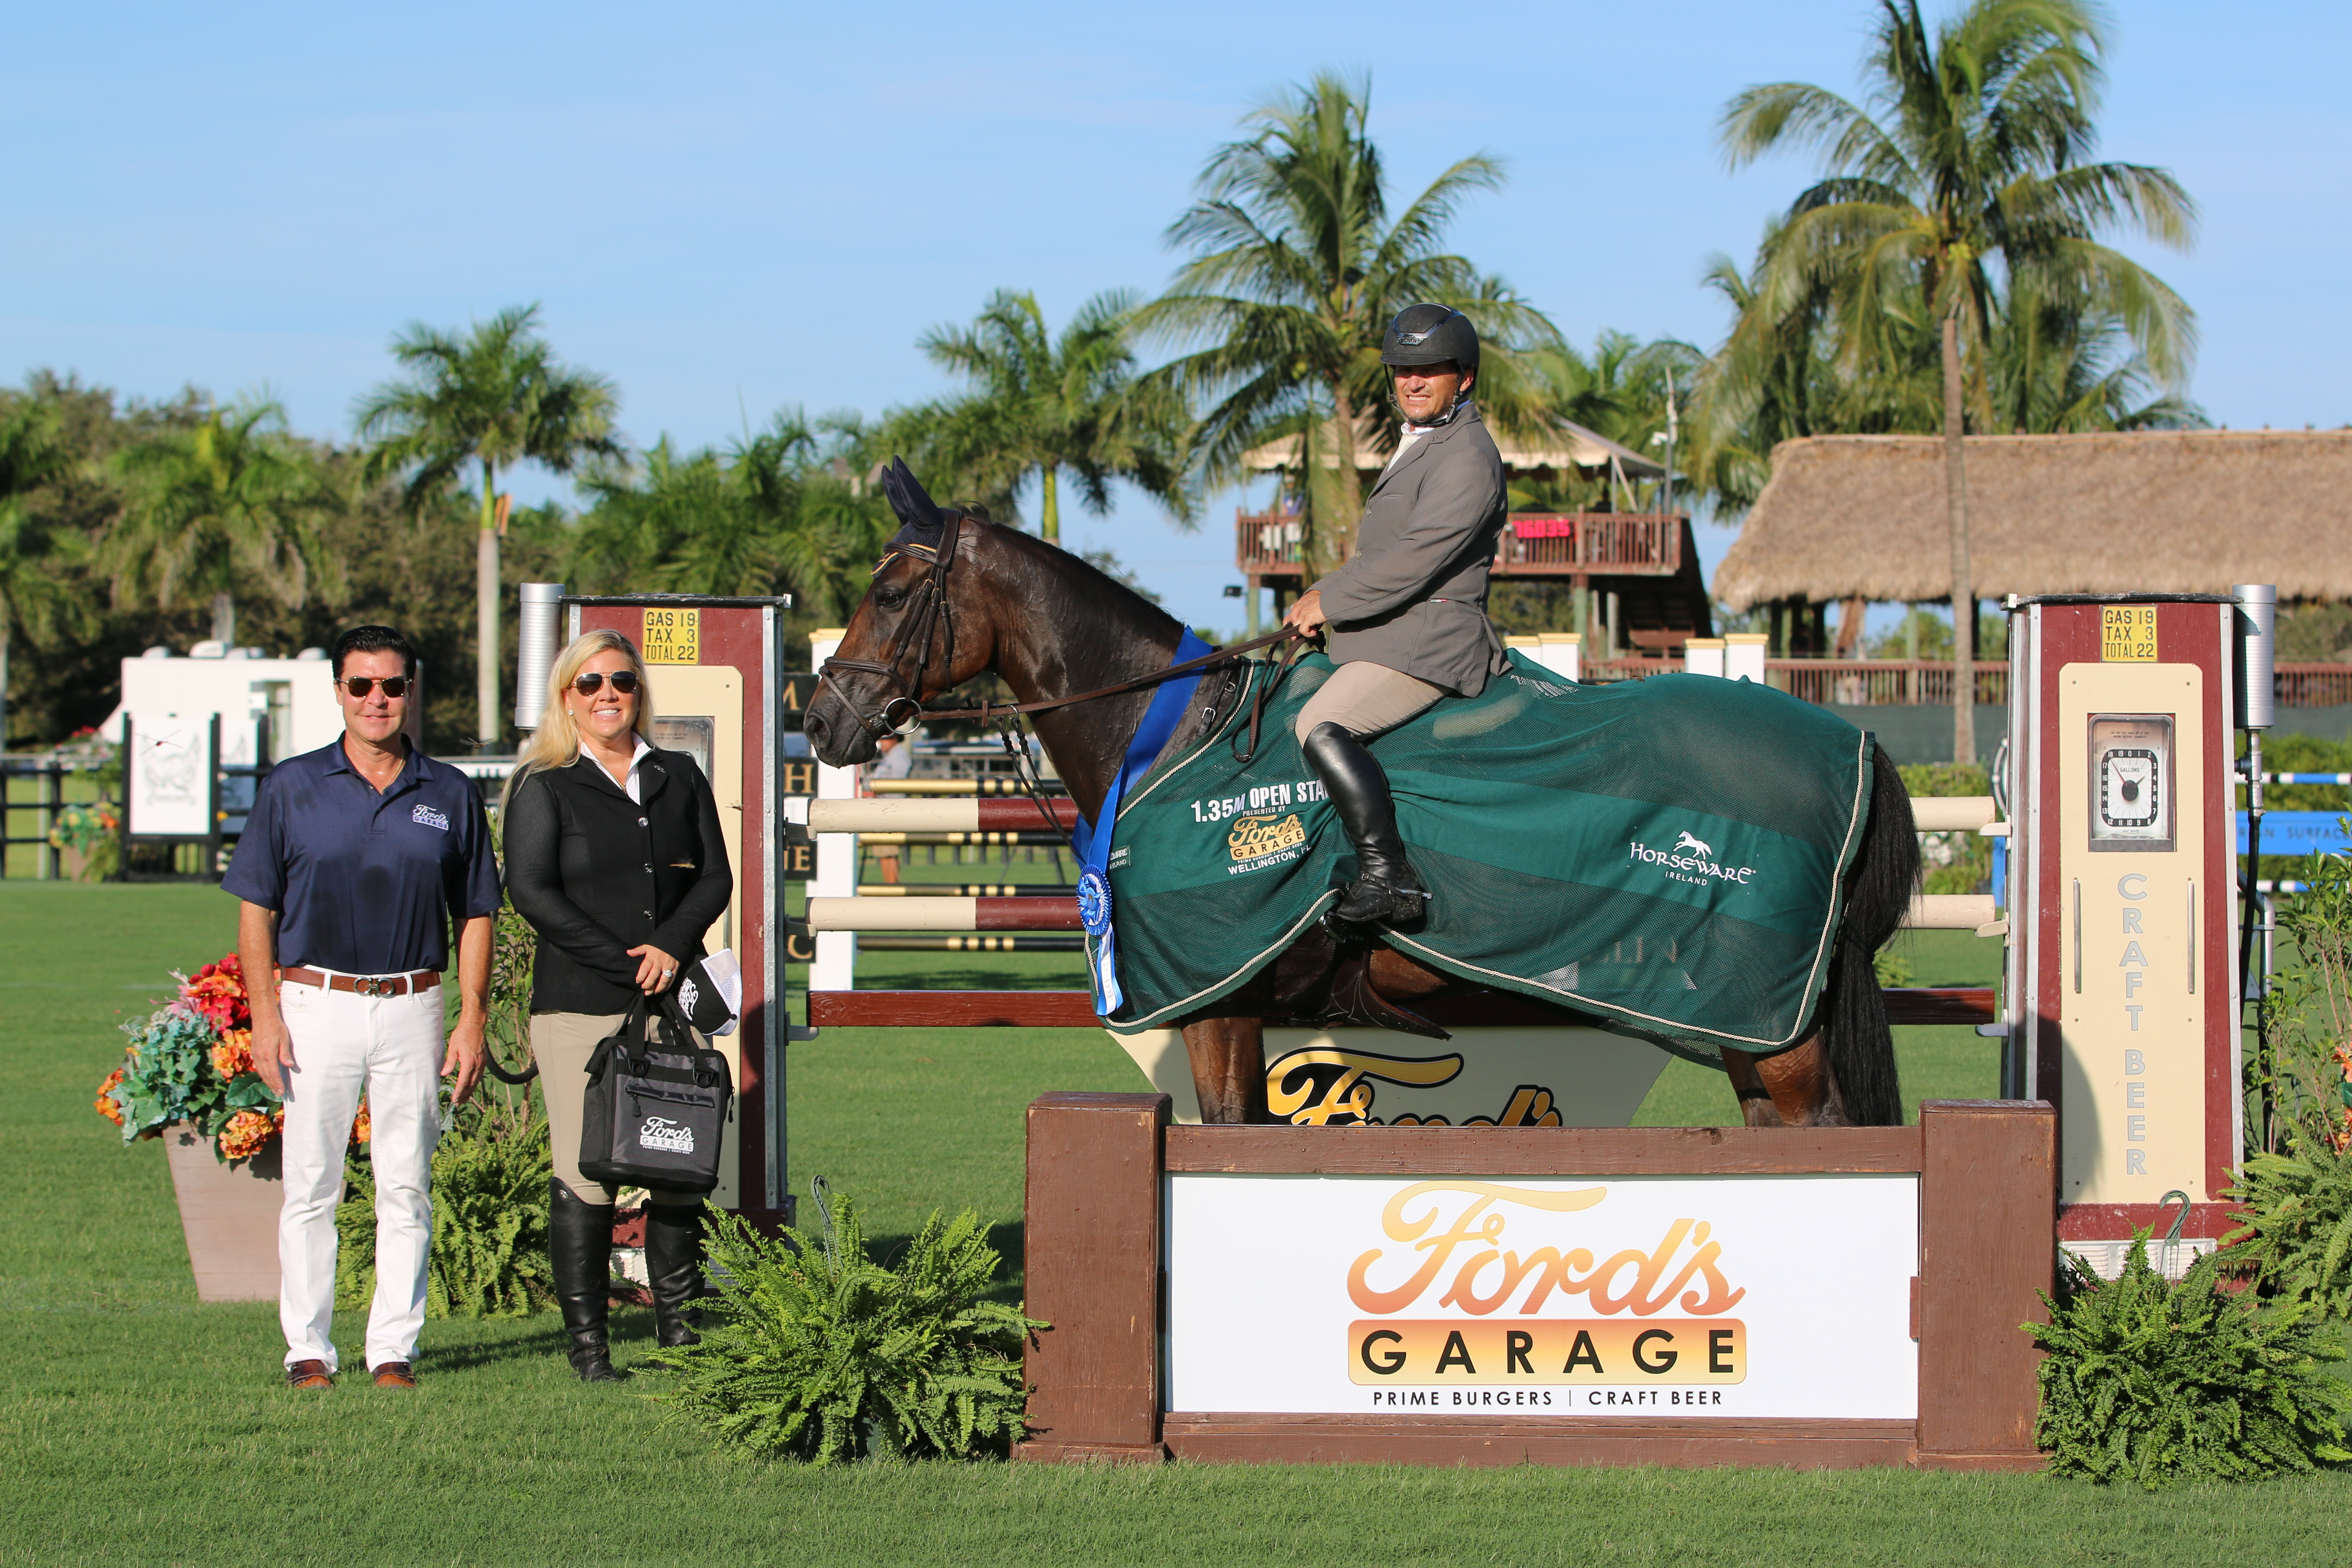 Diego Vivero and Flipper Lady, pictured with Owners of Ford's Garage, Kathleen Gannon-Ledsome and Kieth Ledsome, won the Ford's Garage 1.35m Stake. ©Carly Nasznic Photography